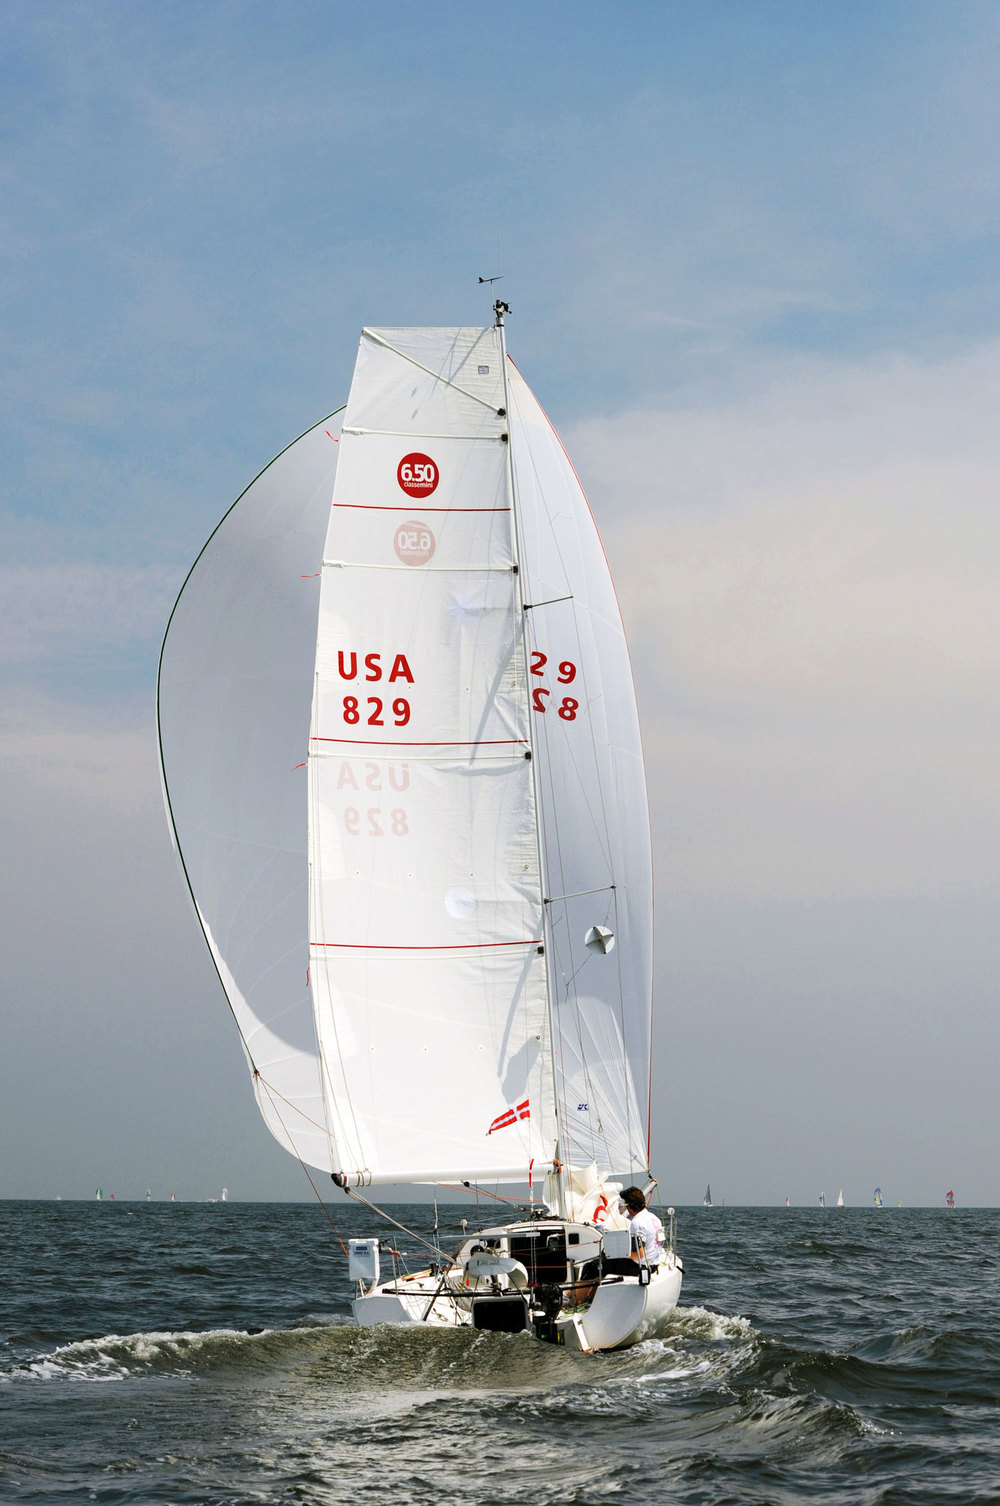 2013 Stamford YC Vineyard Race - downwind start in 10-15 knots